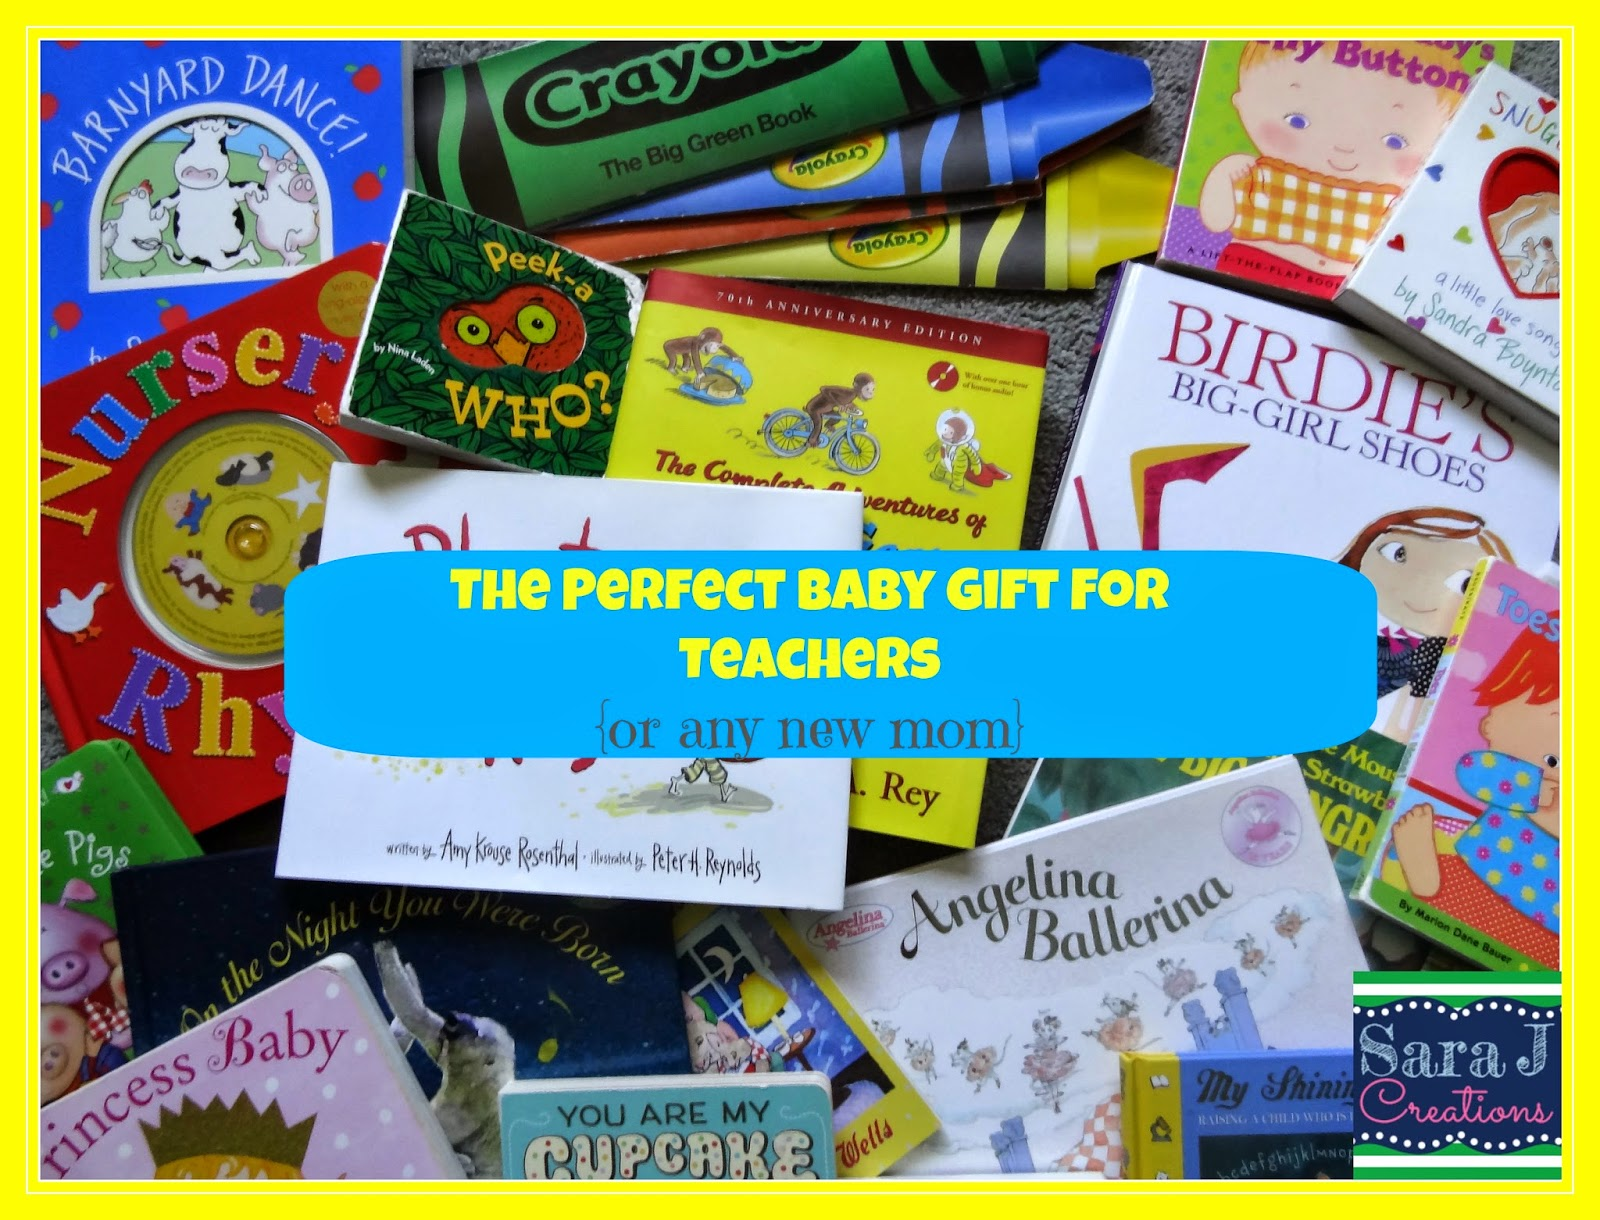 Giving books instead of cards makes the perfect collection for a new baby